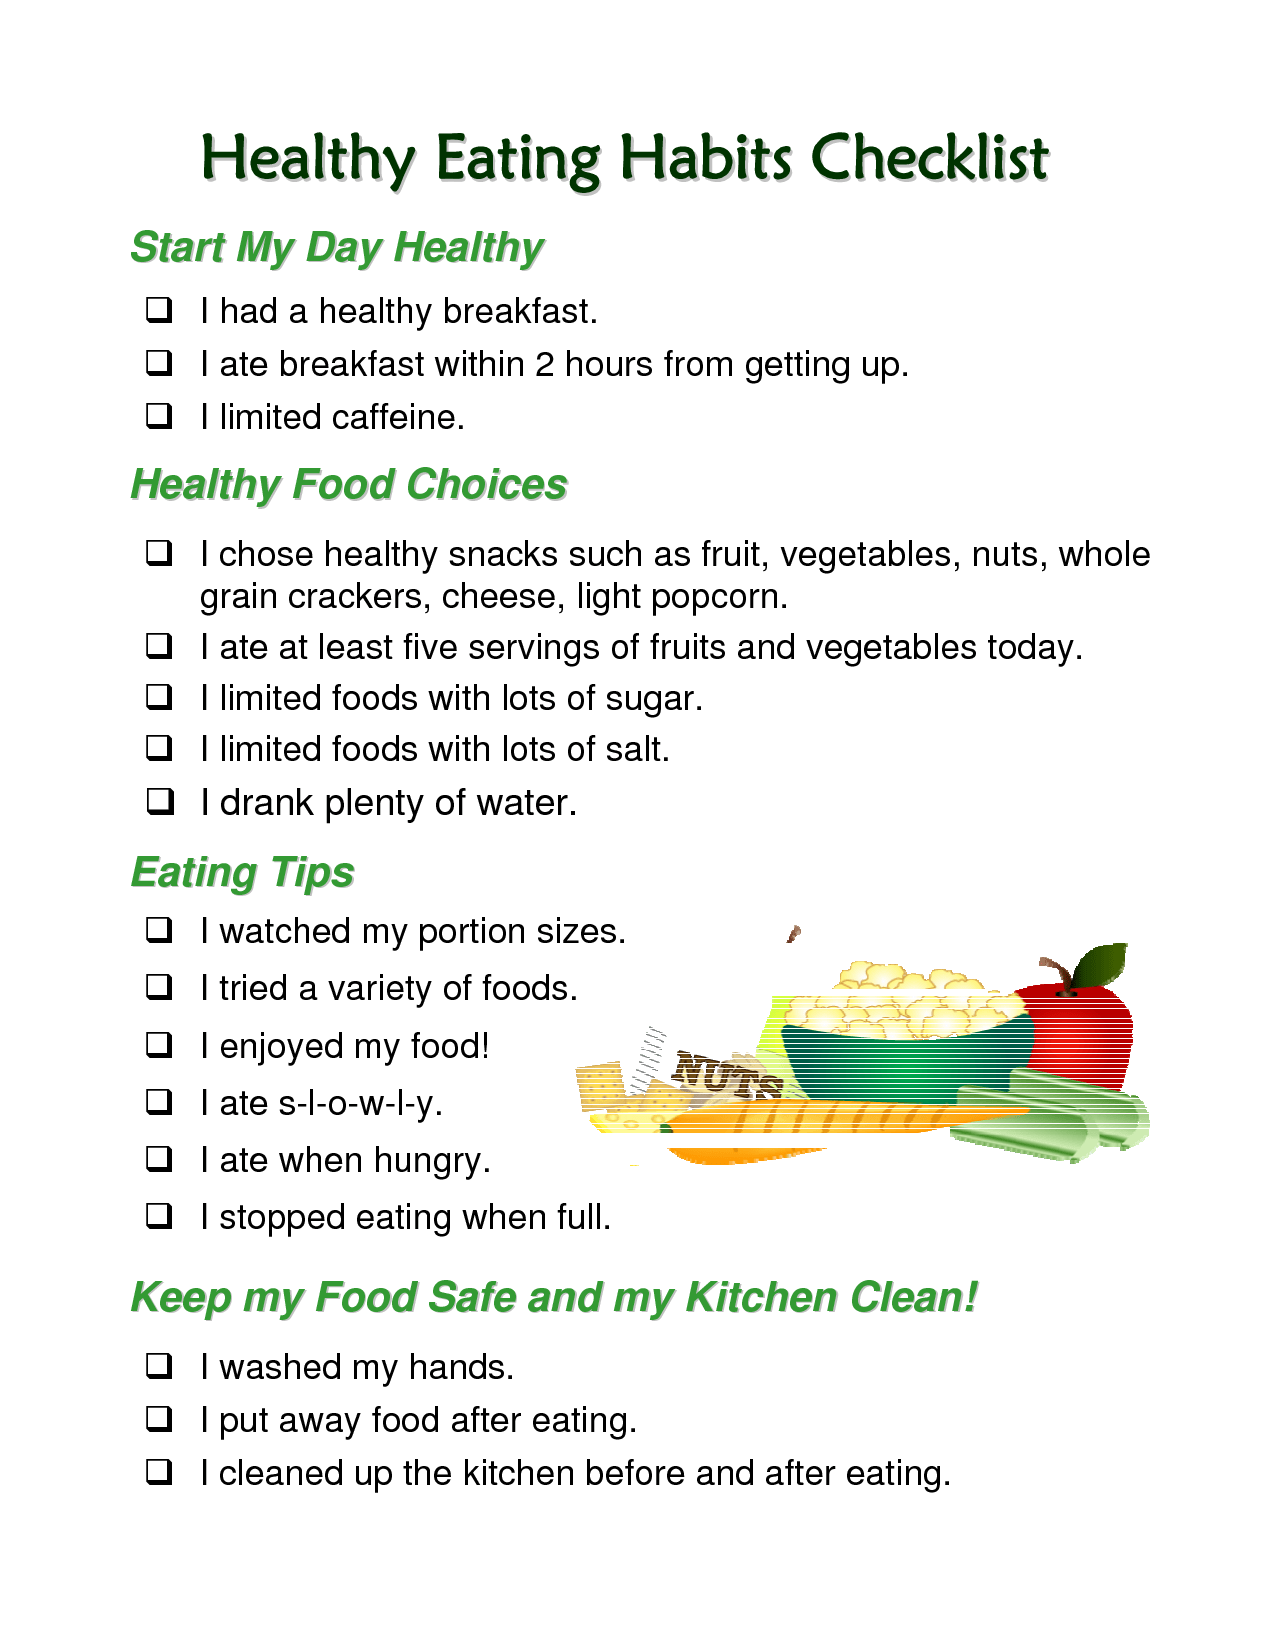 Healthy Eating Habits Checklist